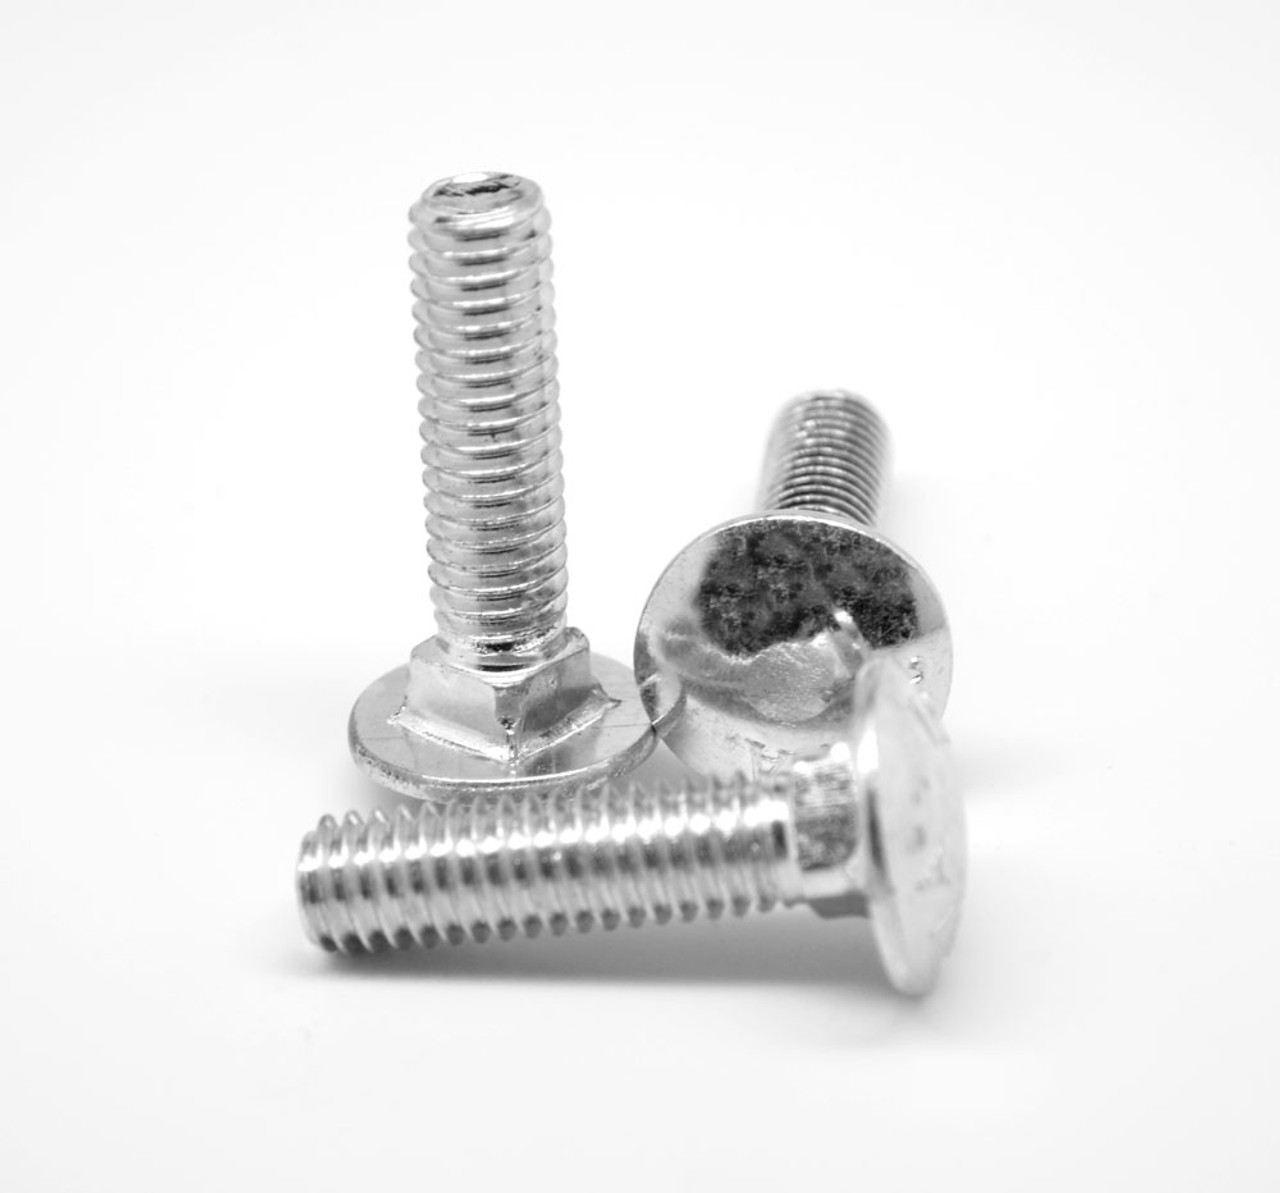 """#10-24 x 1"""" (FT) Coarse Thread A307 Grade A Carriage Bolt Low Carbon Steel Zinc Plated"""